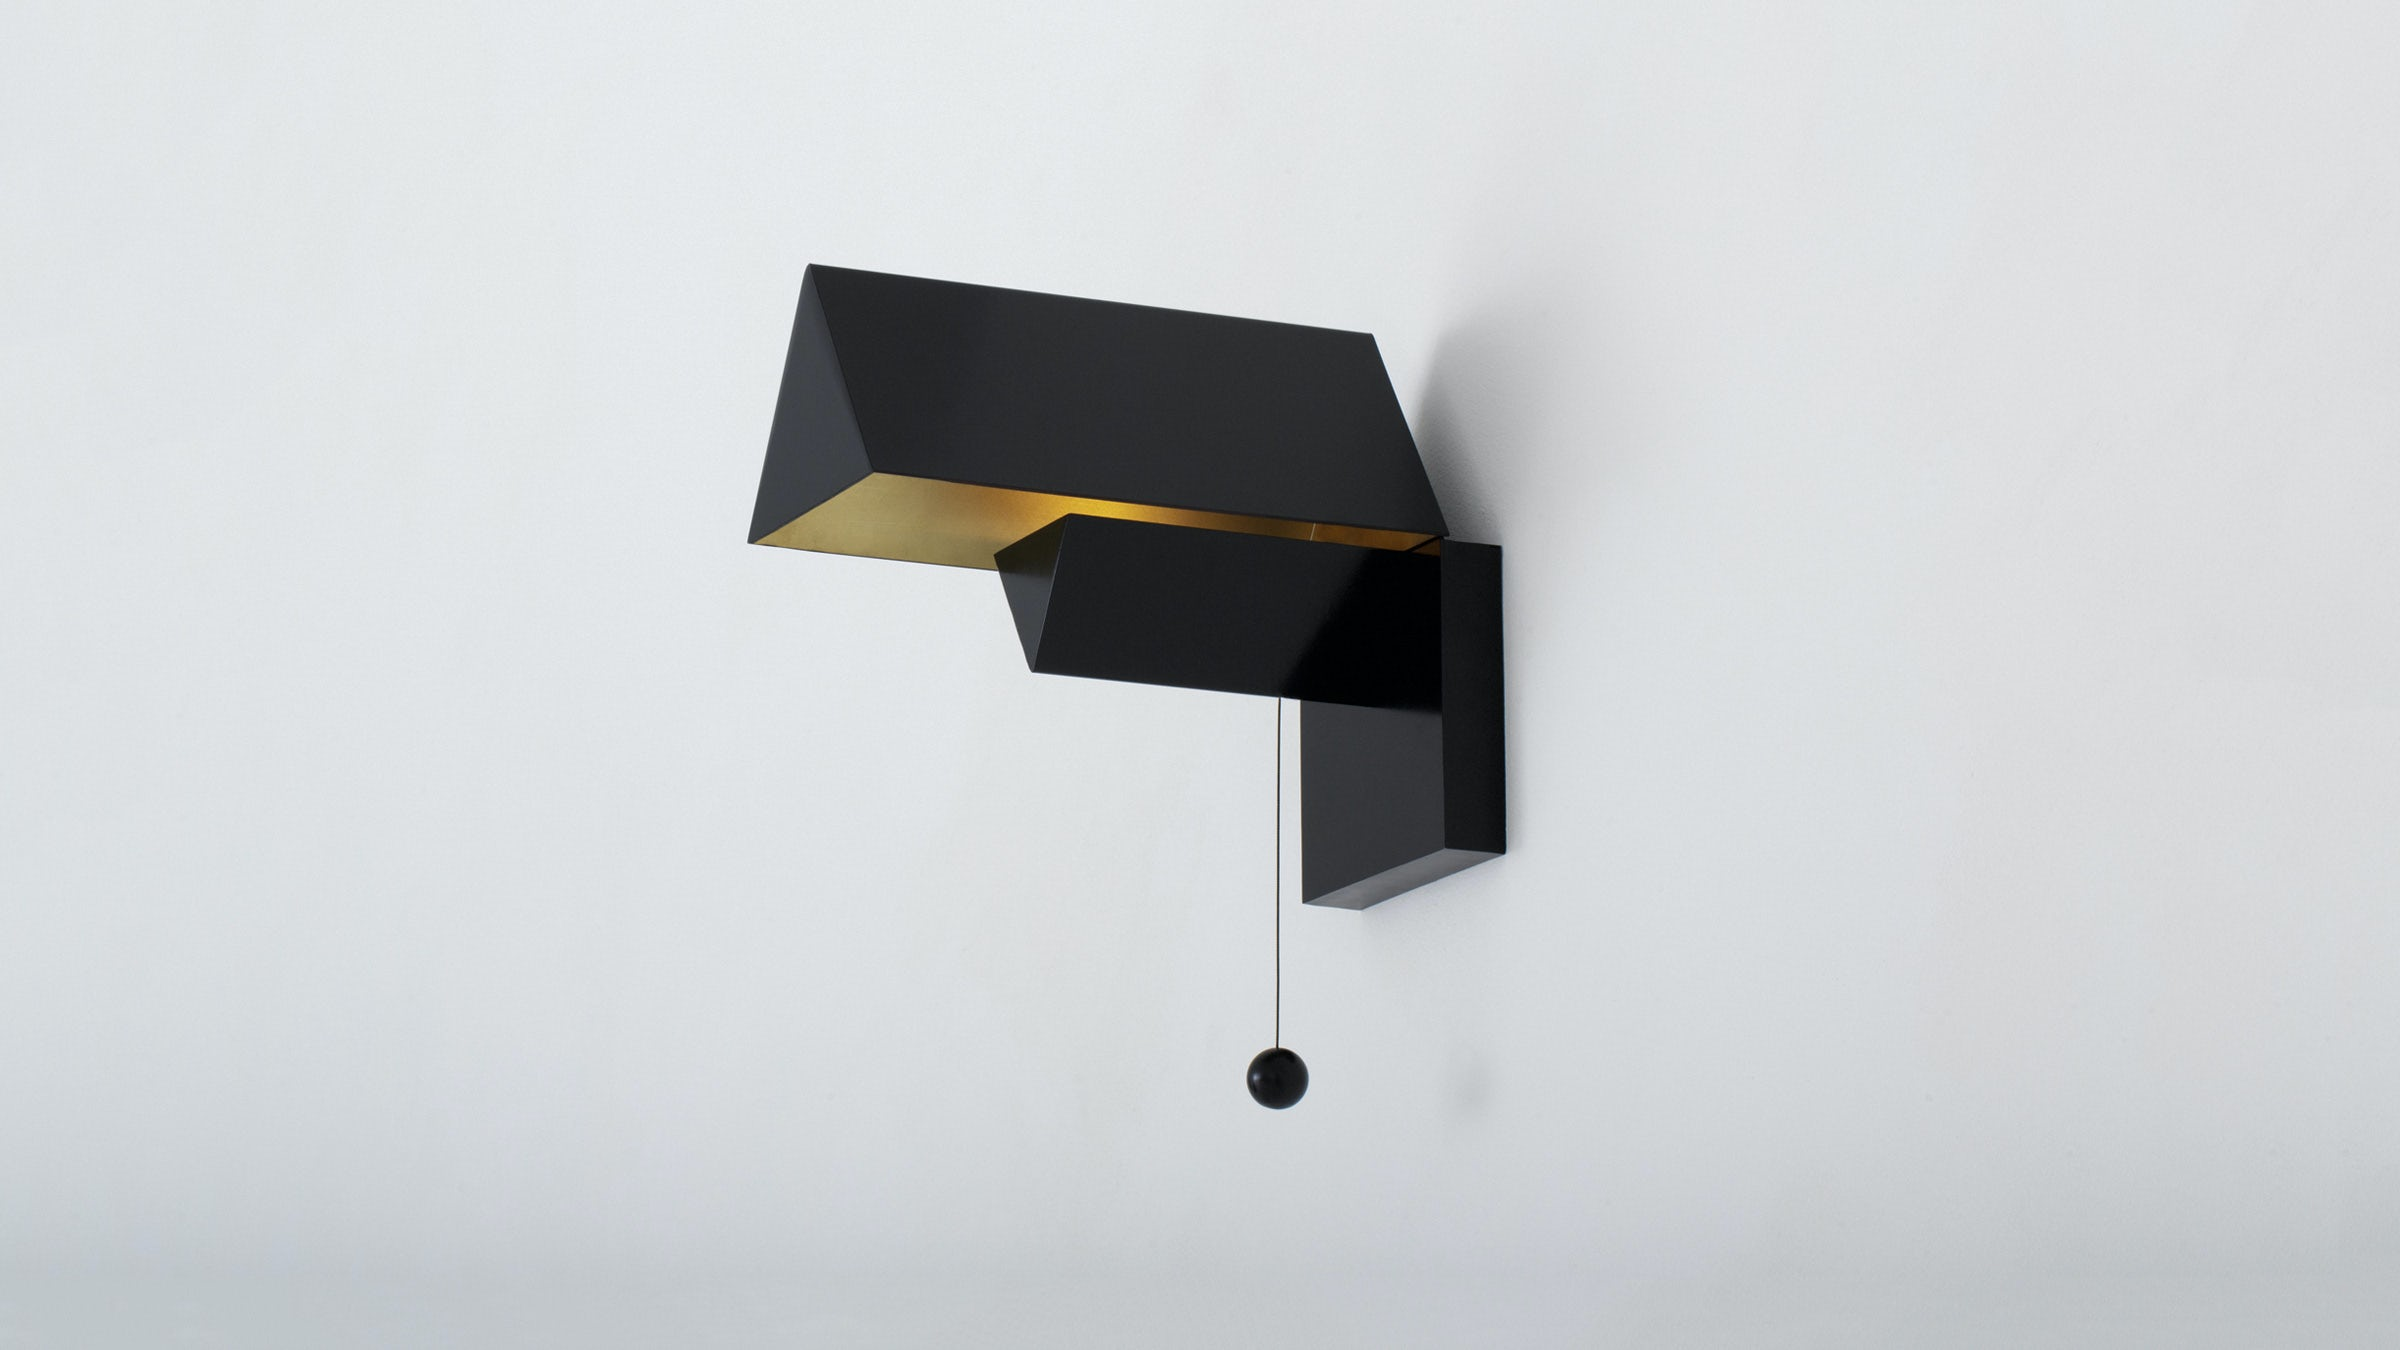 gallery image for Gable Sconce